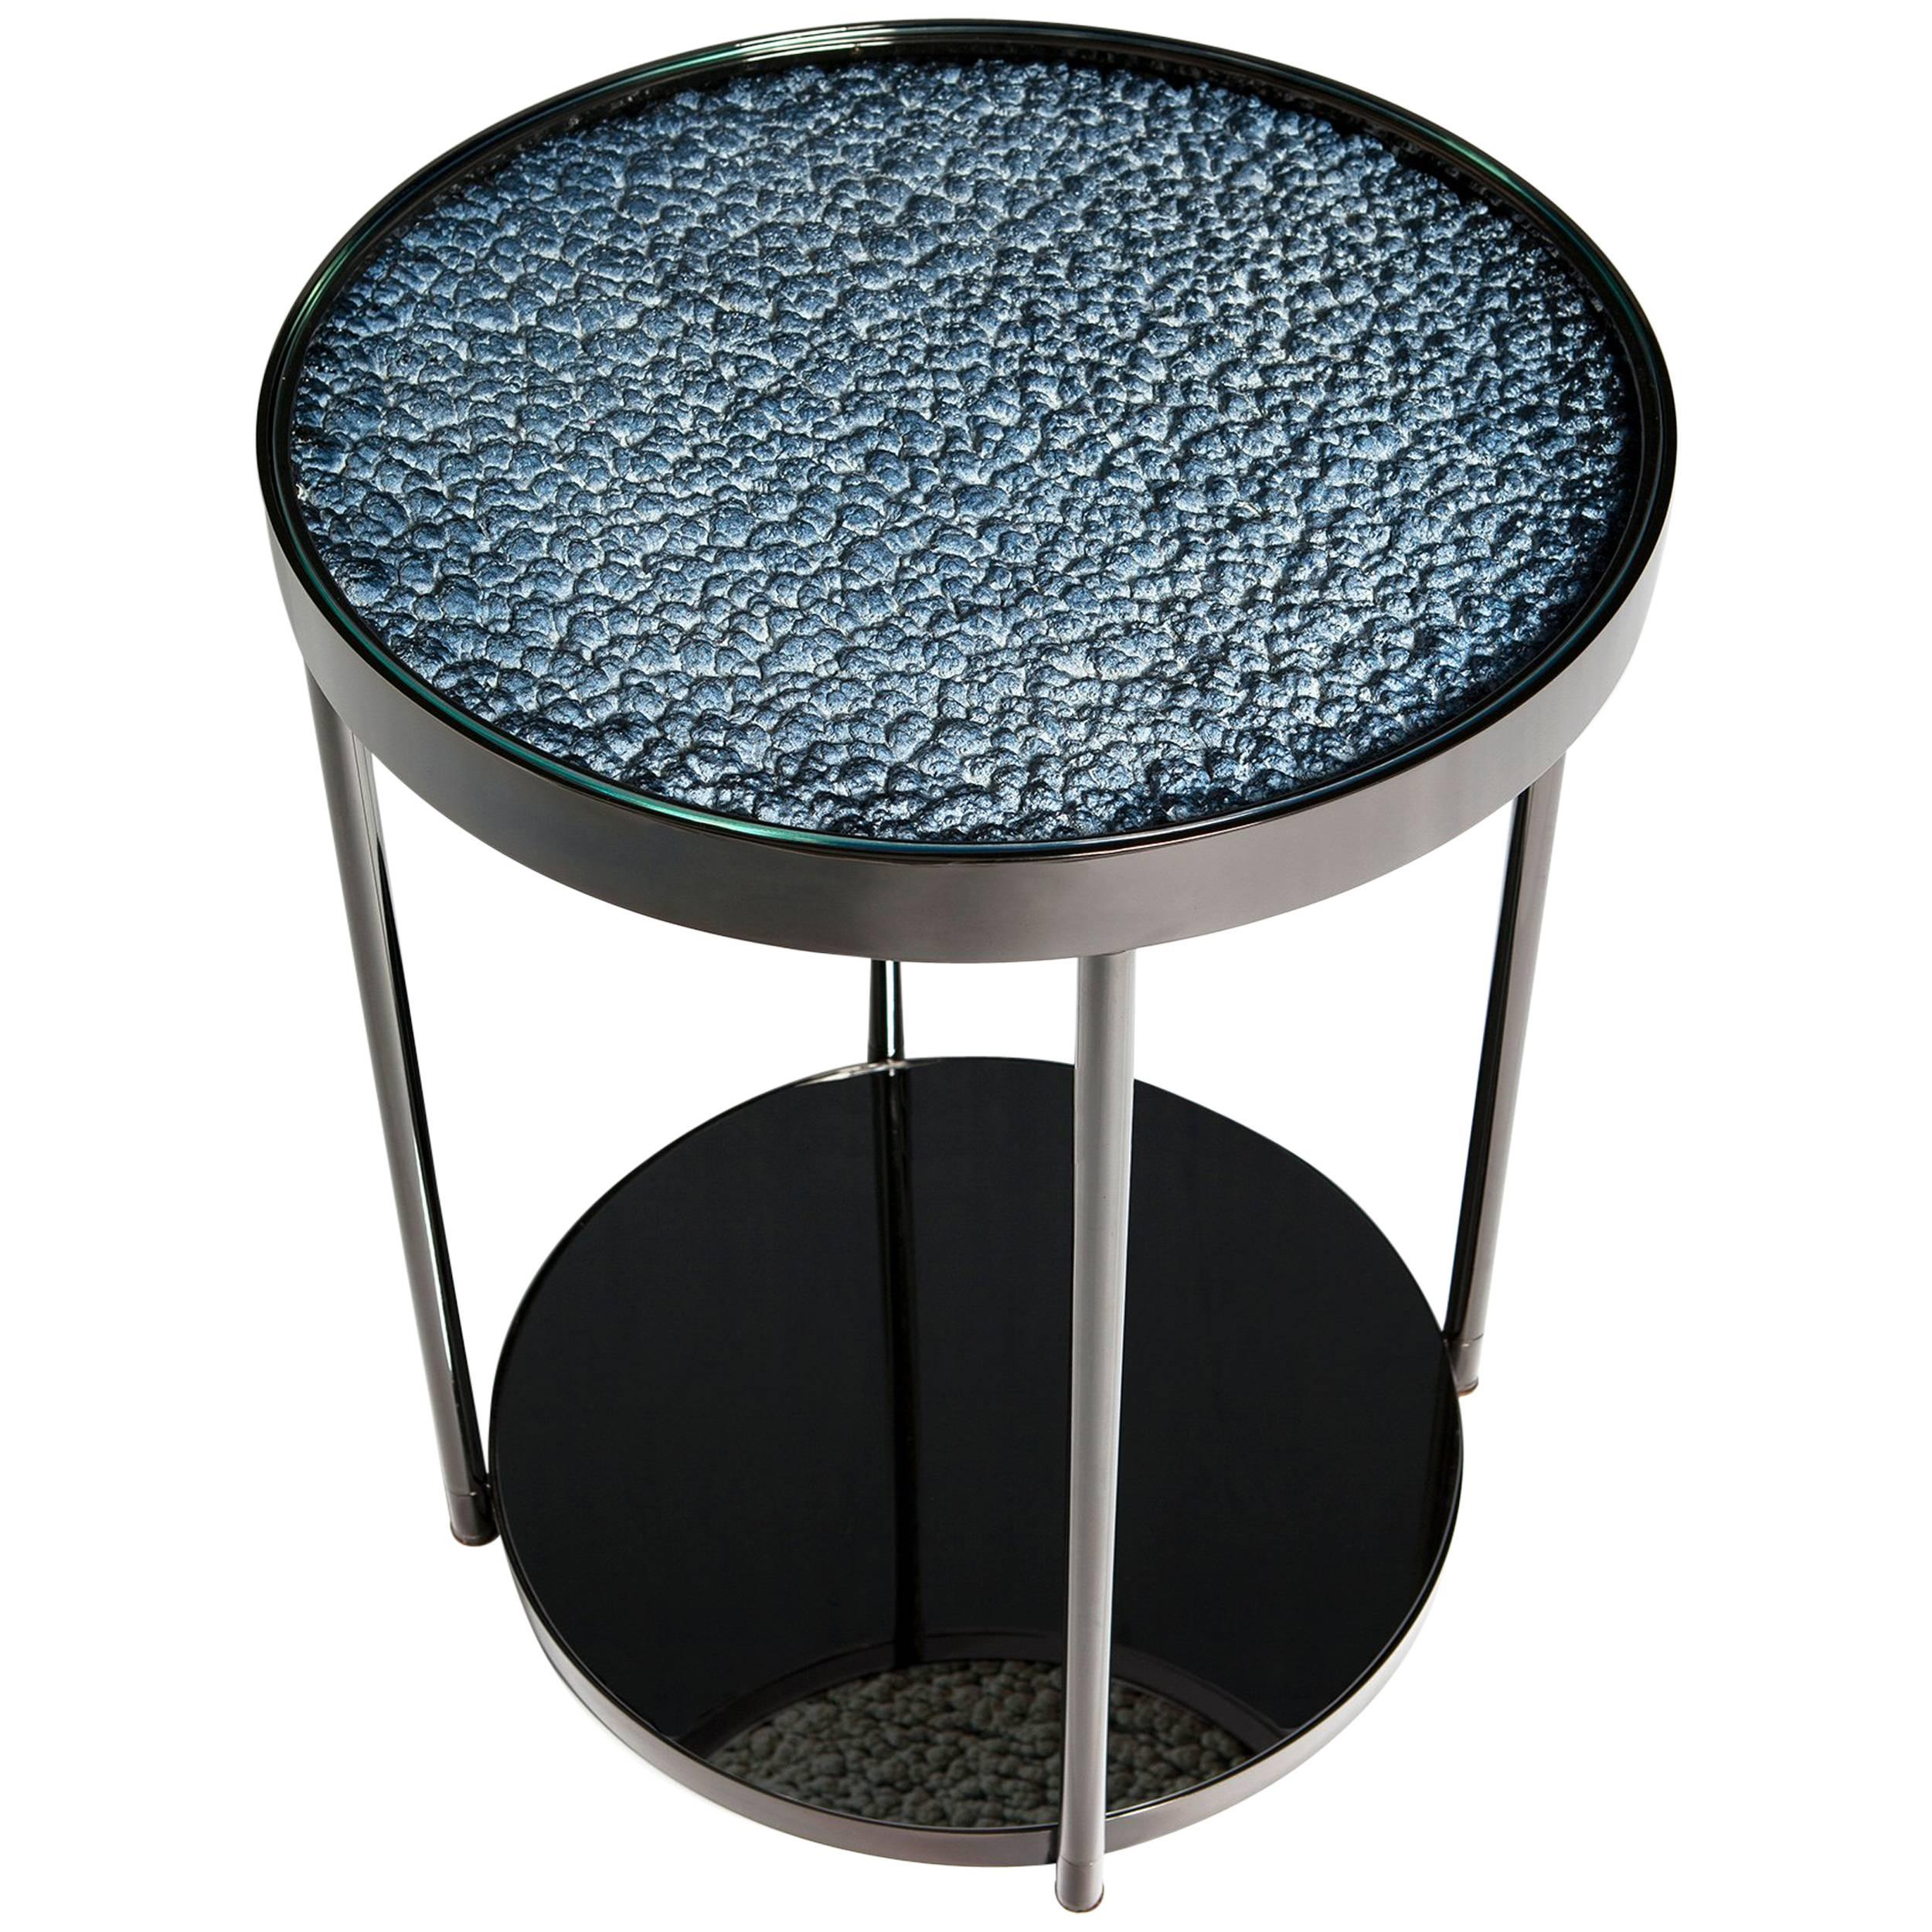 Contemporary Polished Nickel Hemlock Side Table with Gray Tinted Mirror Base